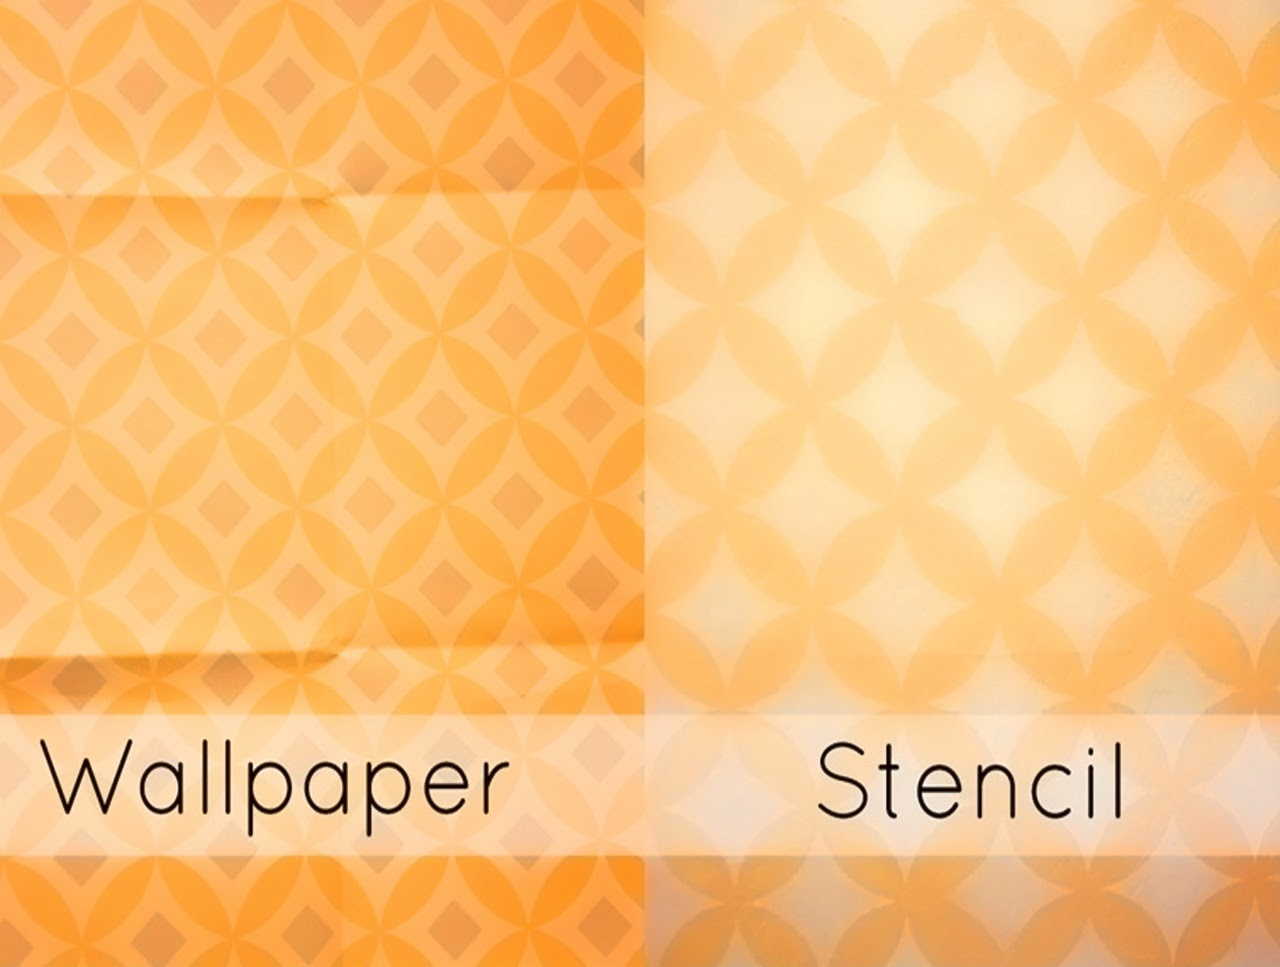 Sherwin Williams Wallpaper ~ WallpaperYork | Brows your wallpaper here | Best quality wallpapers